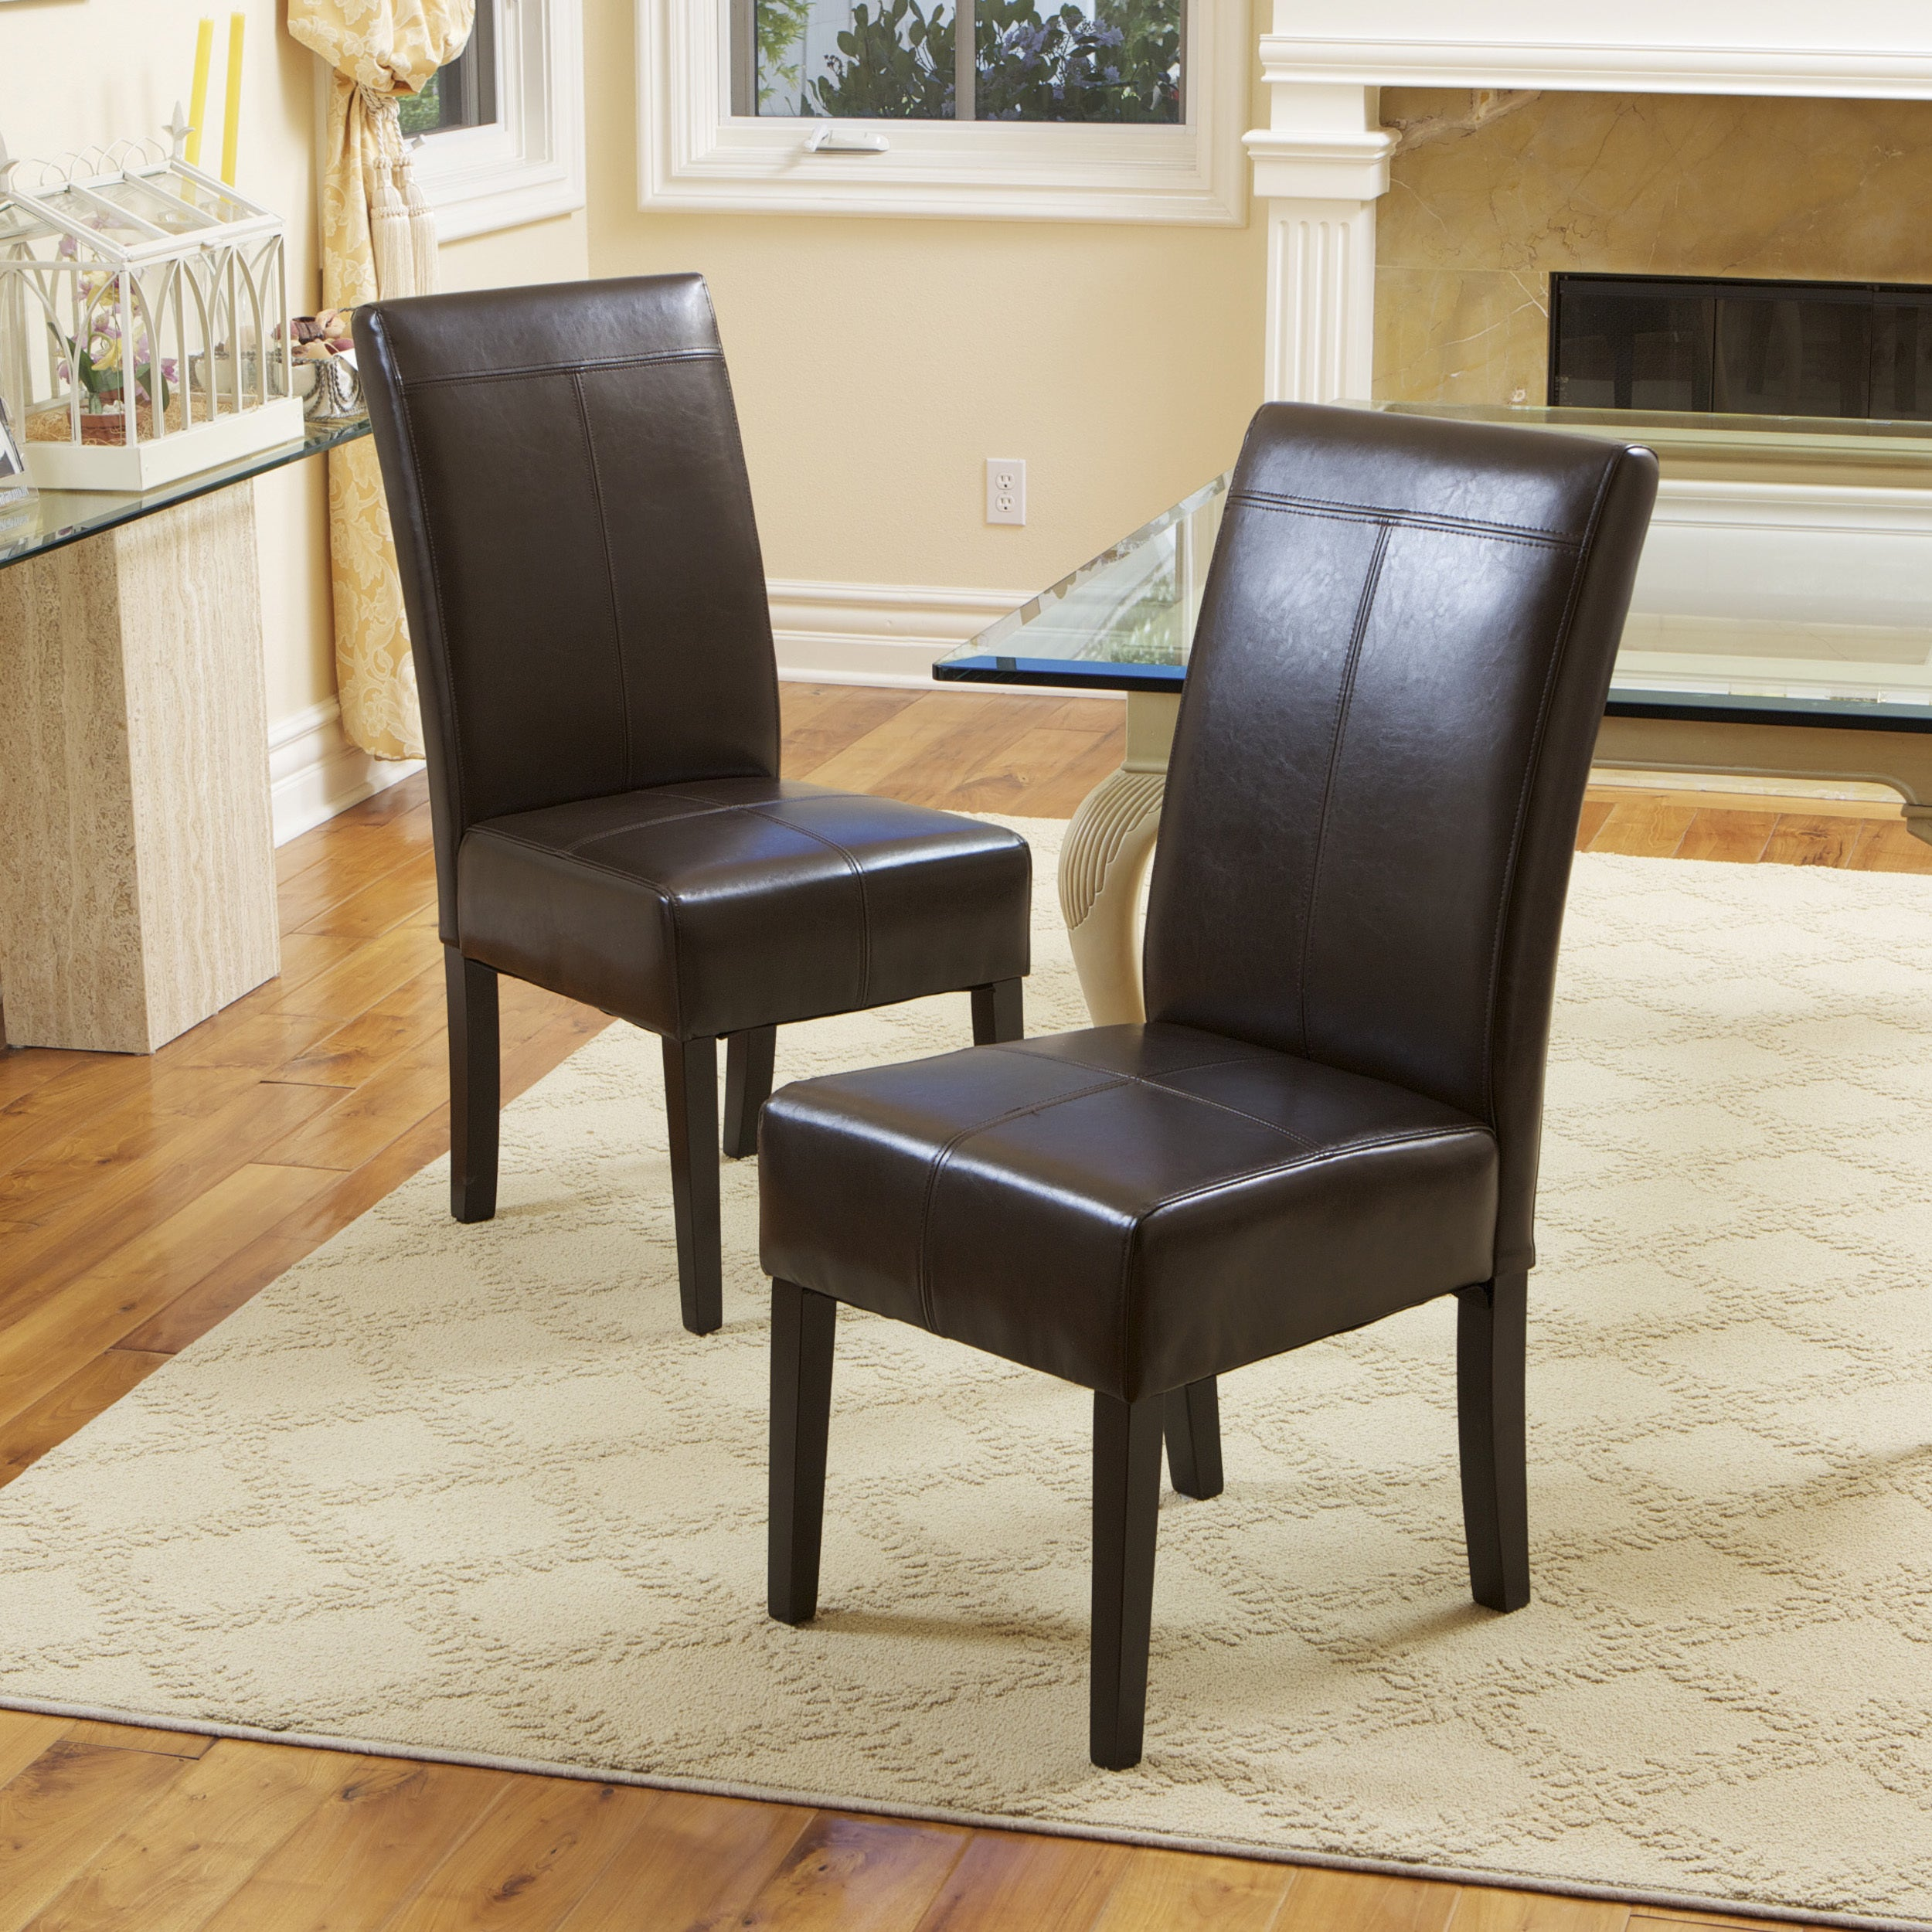 T Sch Chocolate Brown Bonded Leather Dining Chair Set Of 6 By Christopher Knight Home